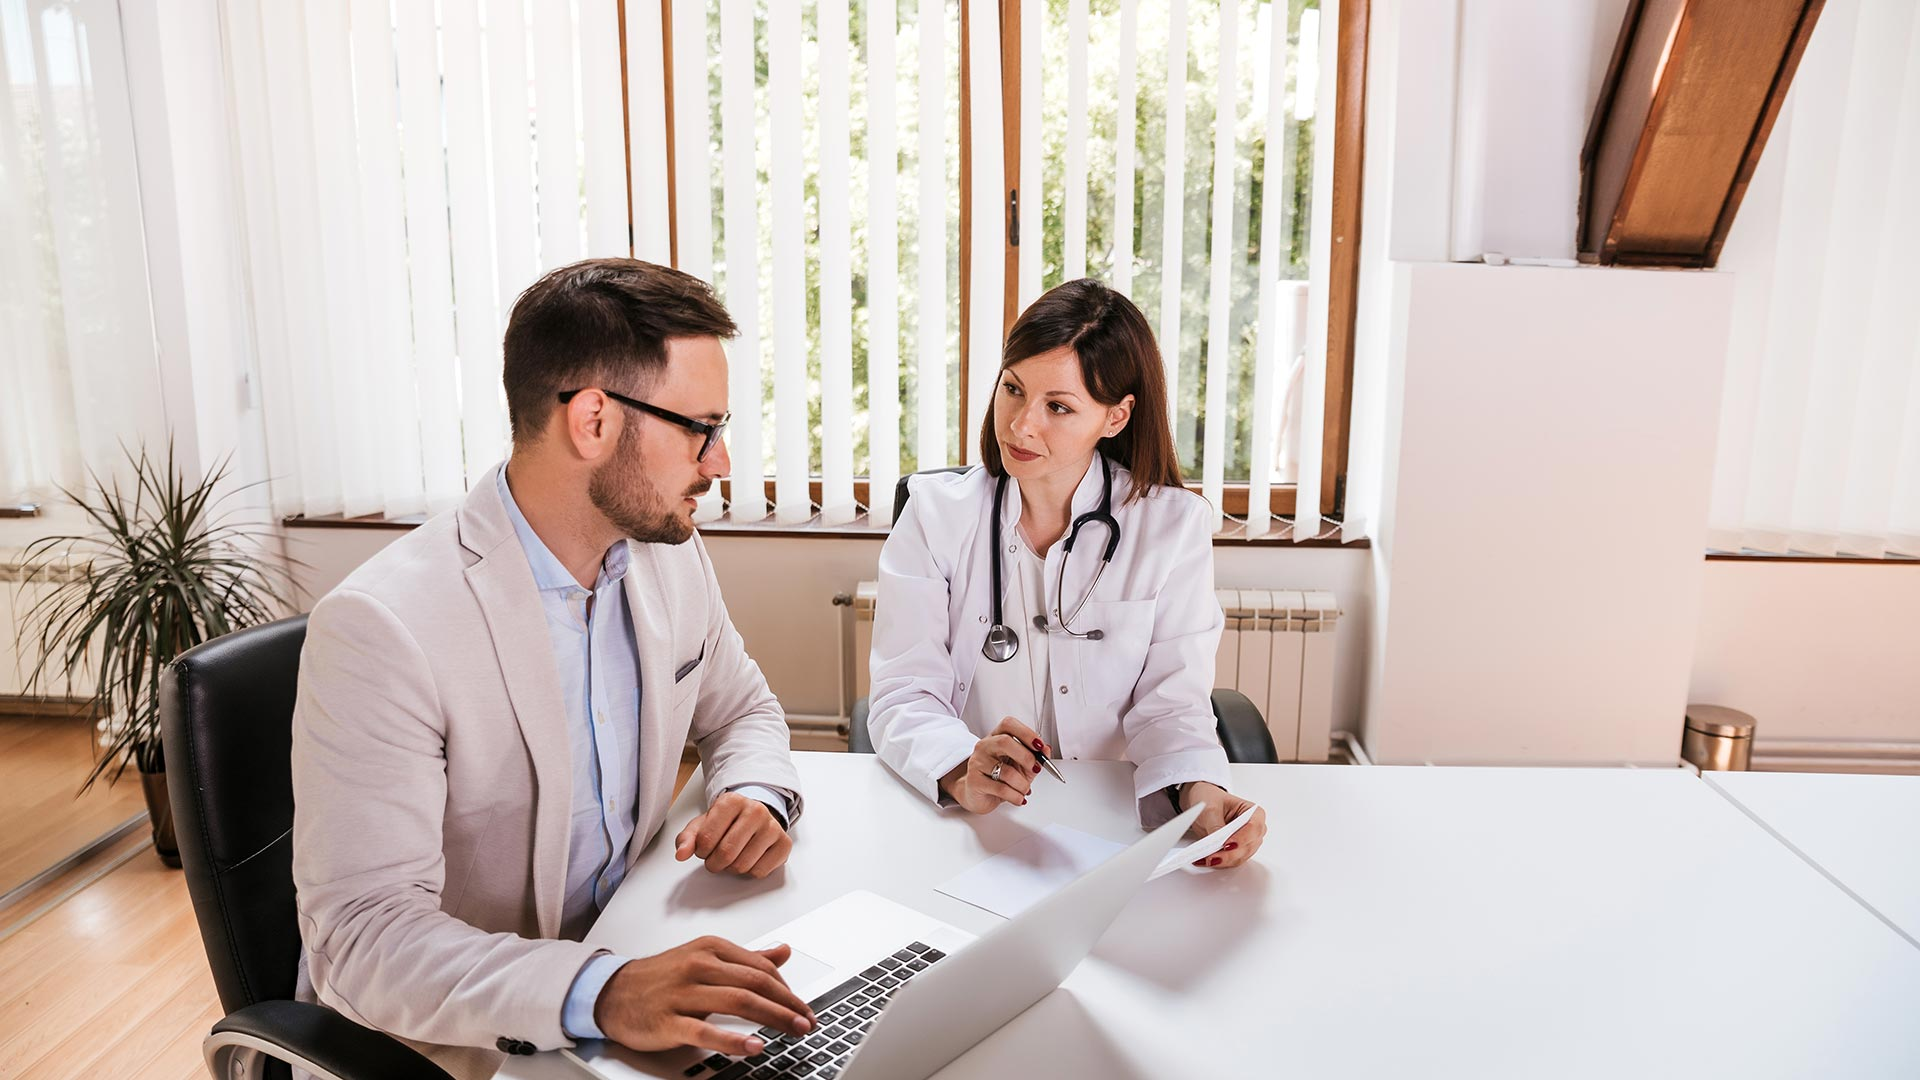 Health care business professional speaks with a medical doctor in an office.